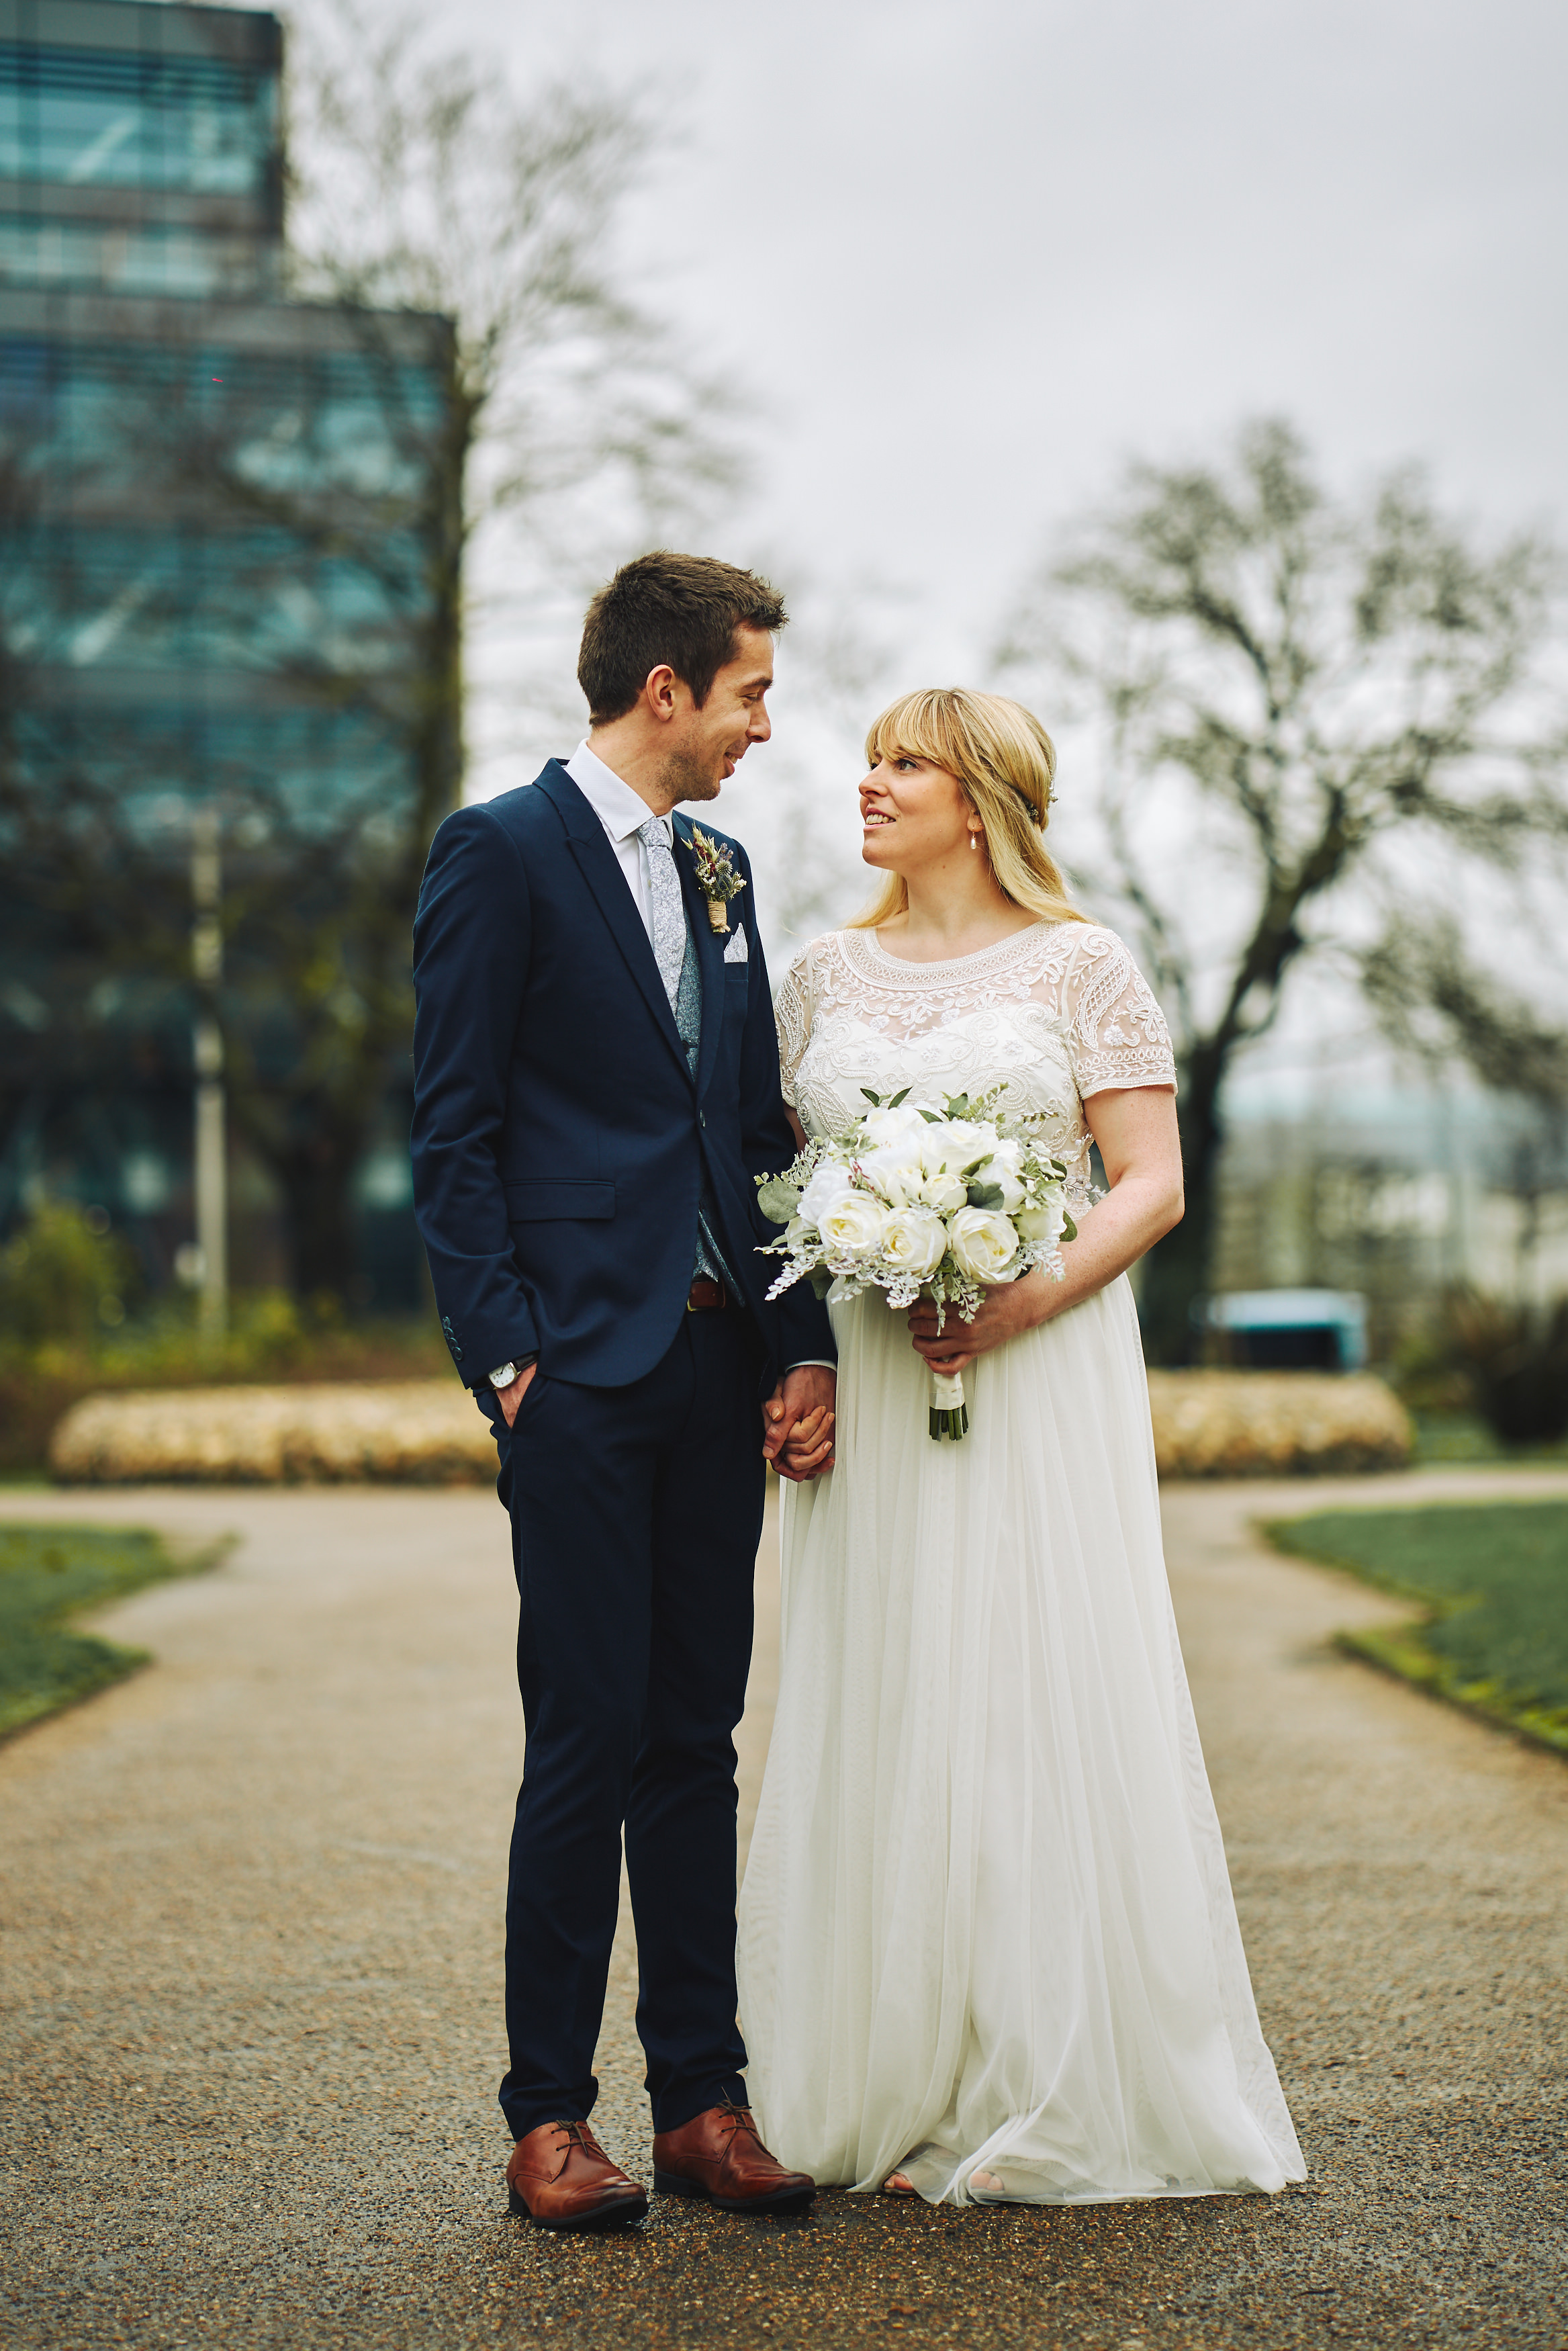 Ten Hour £900 - The ten hour packages, priced at £900 will usually cover the pre-wedding prep through to the first dance. This comes with a free wooden USB box to ensure your memories are saved digitally forever.